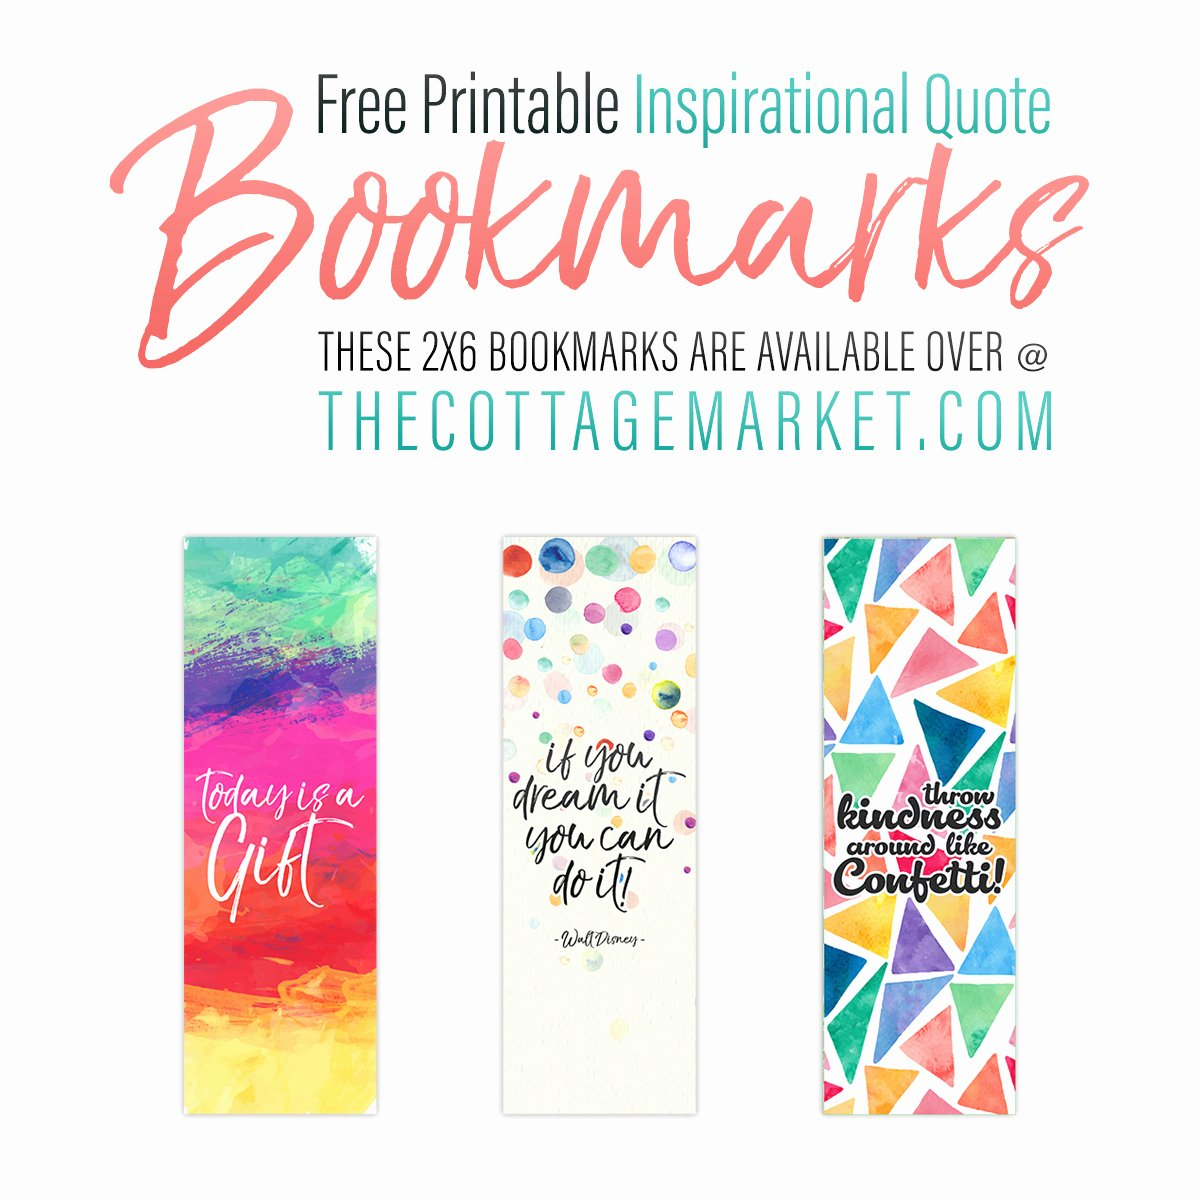 Free Printable Inspirational Bookmarks New Free Printable Inspirational Quote Bookmarks the Cottage